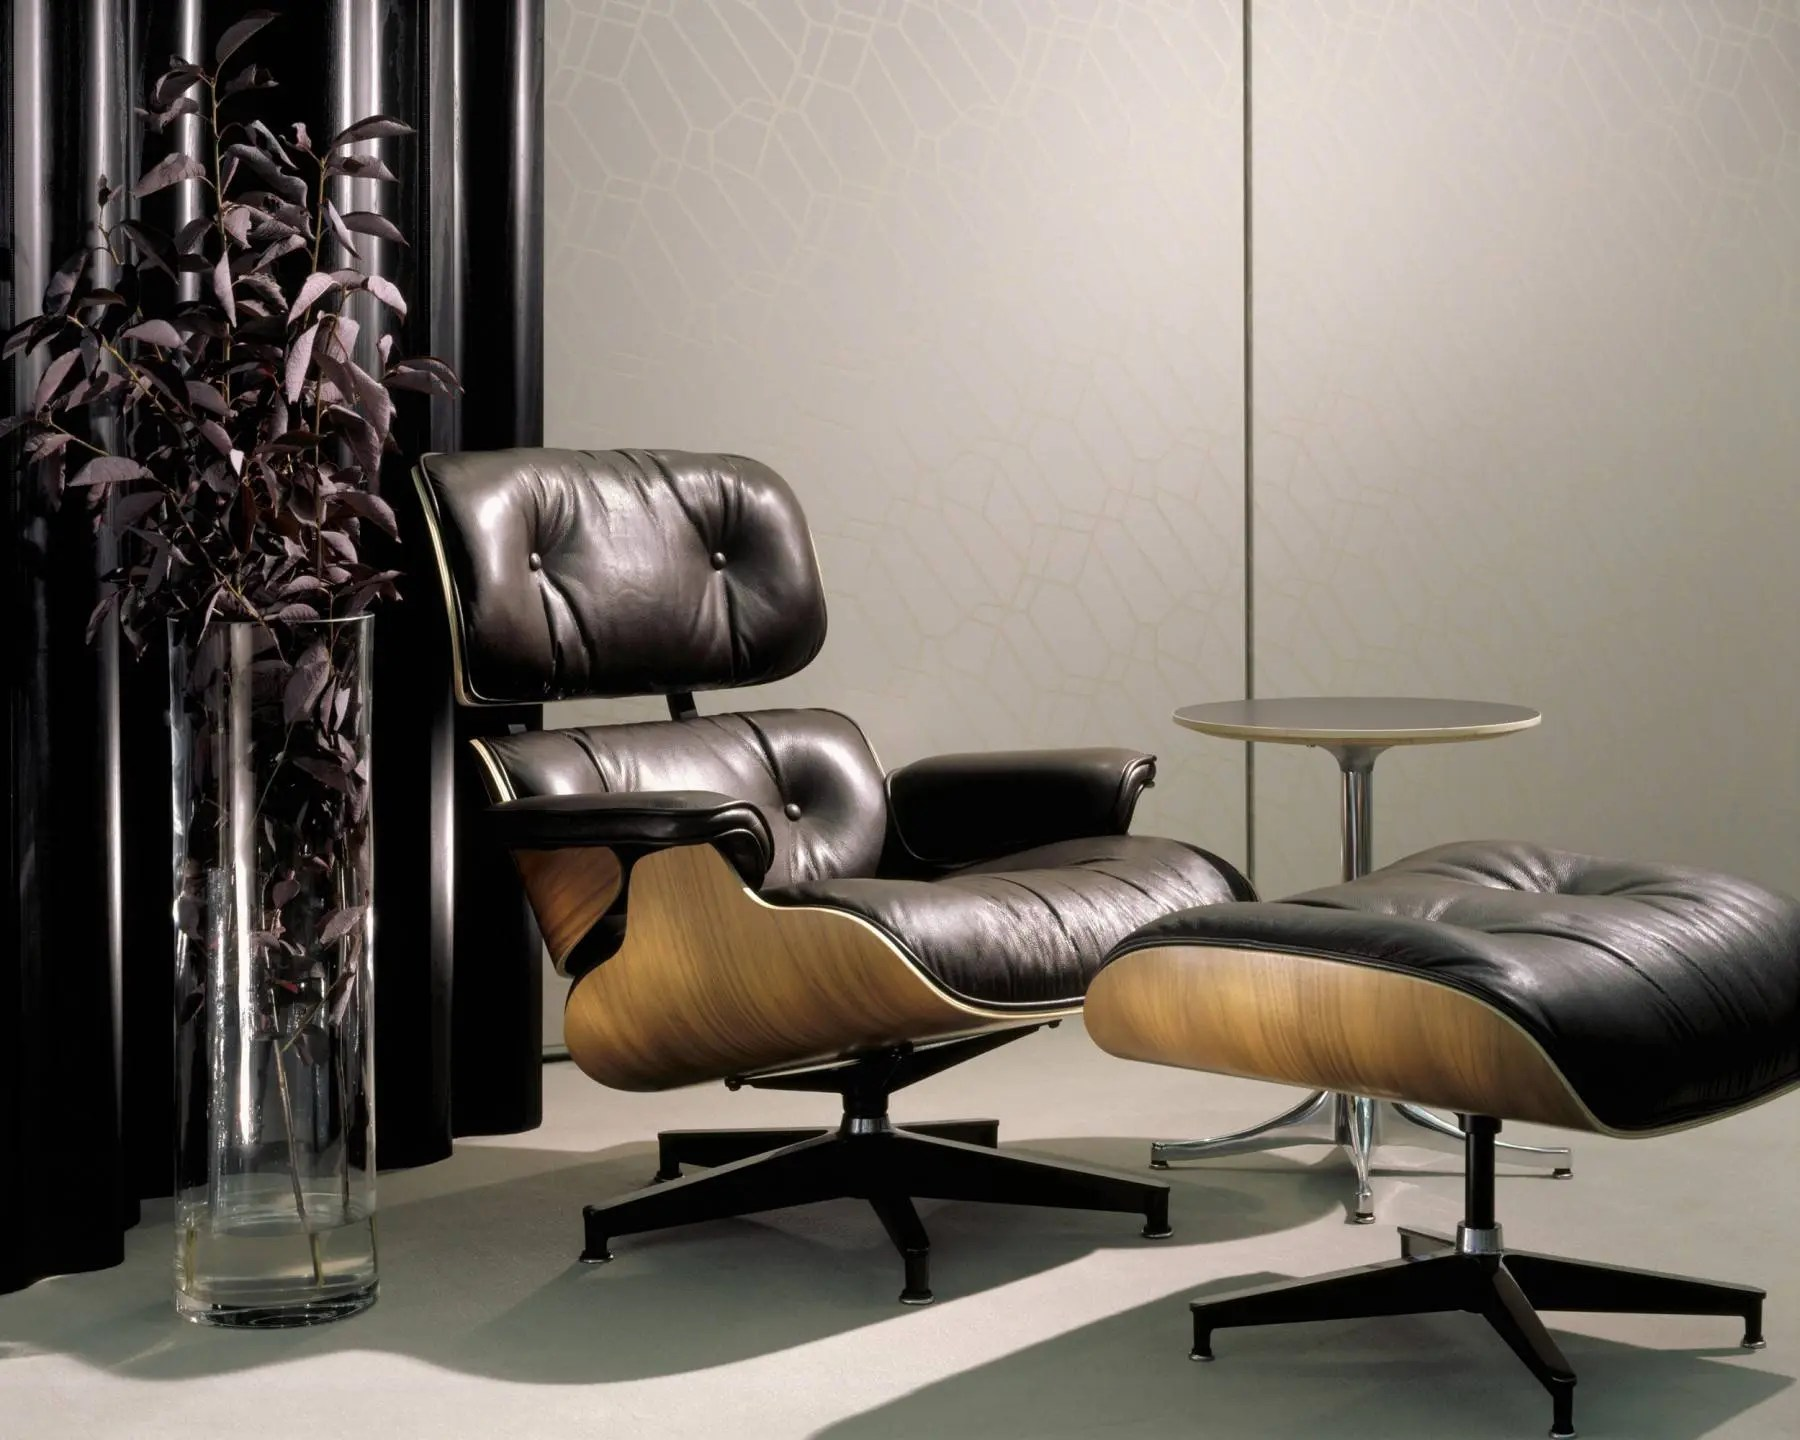 Lounge Chair Eames Herman Miller Eames® Lounge Chair And Ottoman - Gr Shop Canada